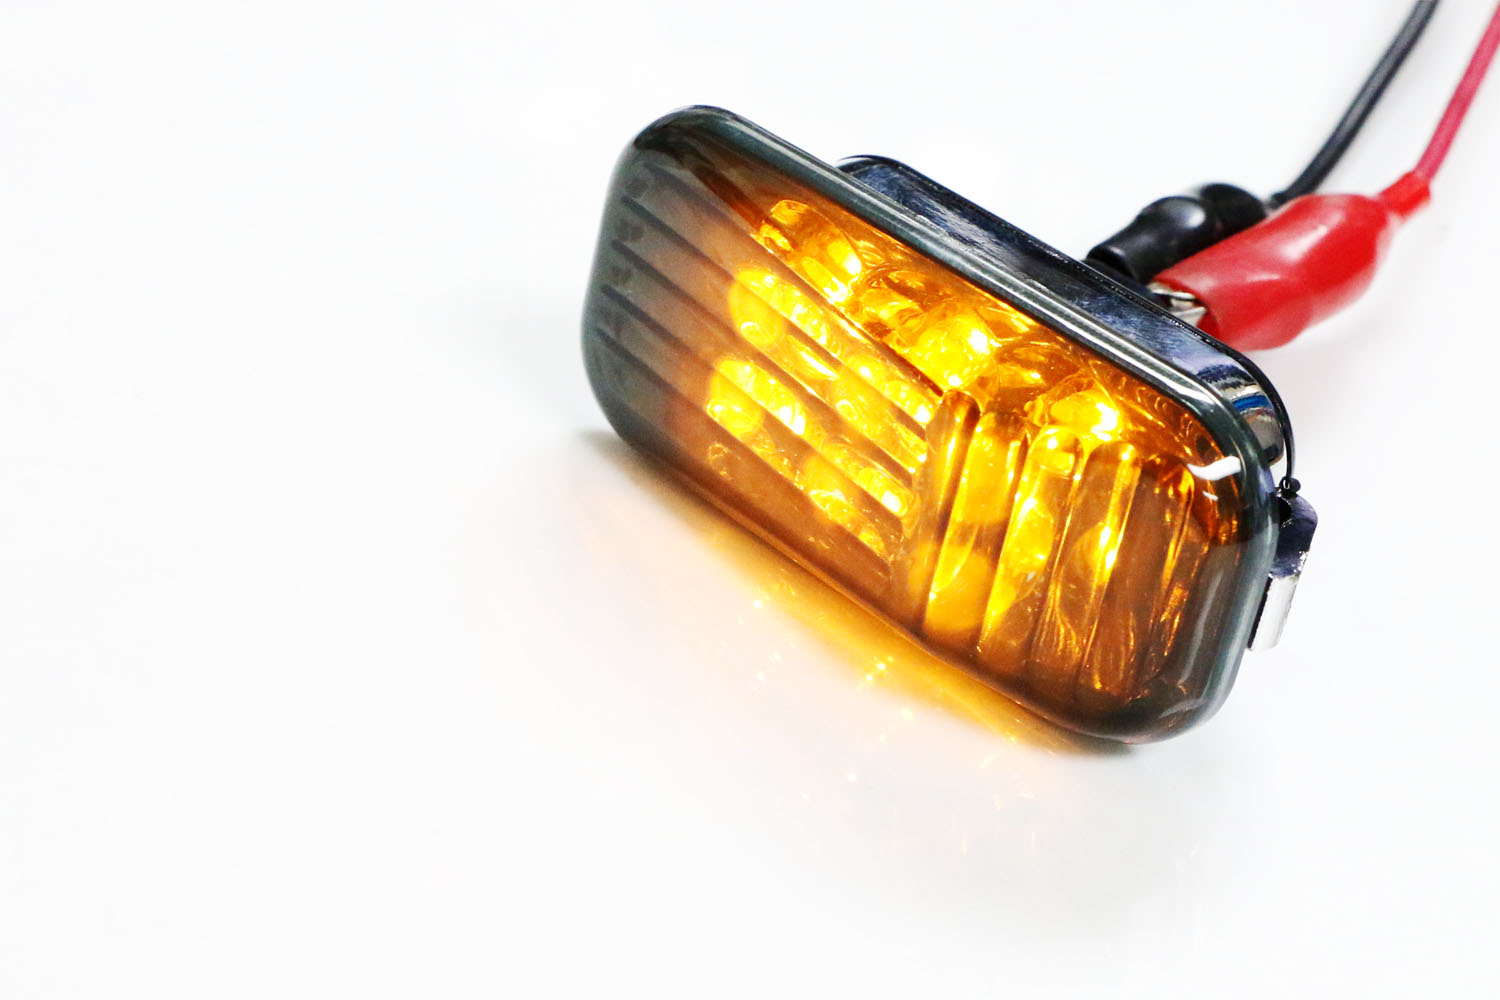 iJDMTOY Smoked Lens Amber LED Front Side Marker Lights For Honda Accord Civic CR-X S2000 Acura Integra RSX NSX etc 2 Includes JDM Style Sidemarkers